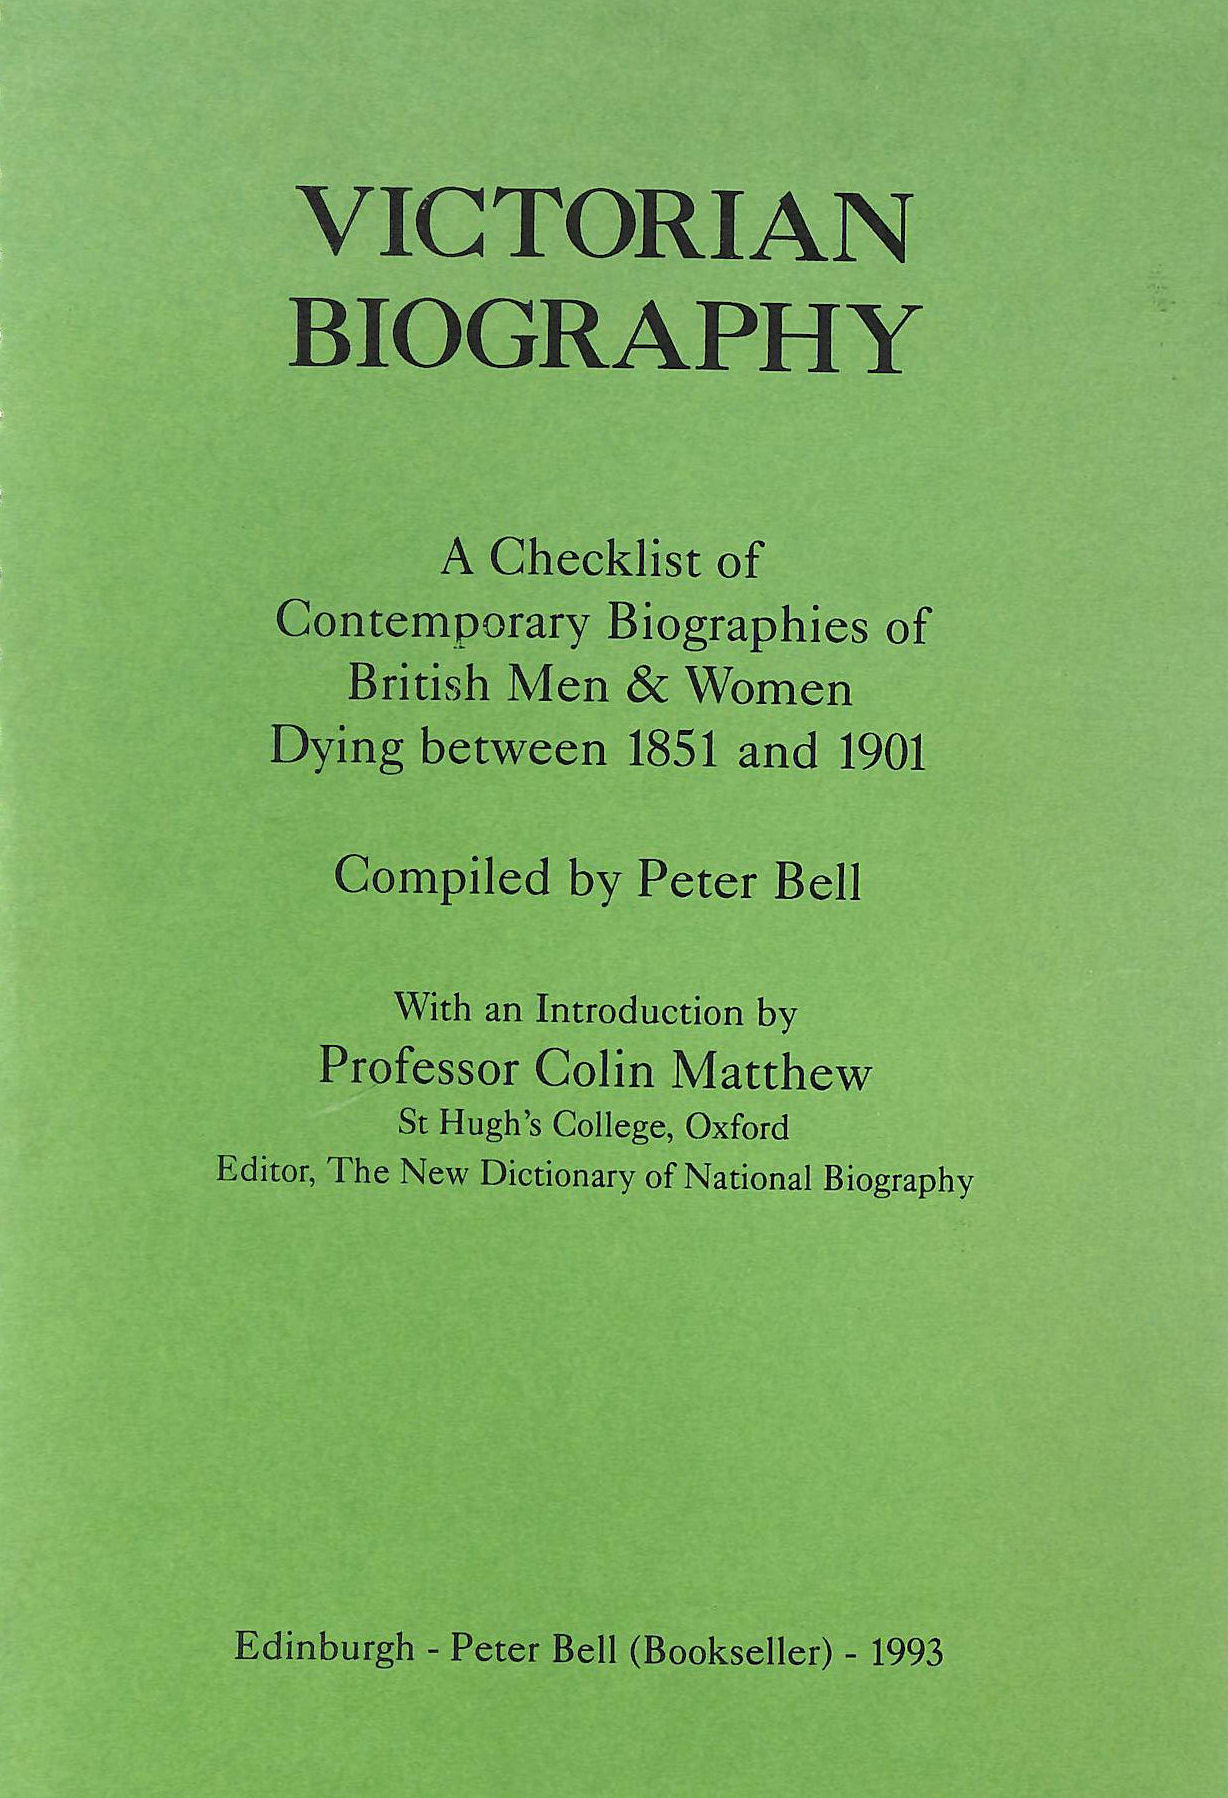 Image for Victorian Biography: A Checklist of Contemporary Biographies of British Men and Women Dying Between 1851 and 1901